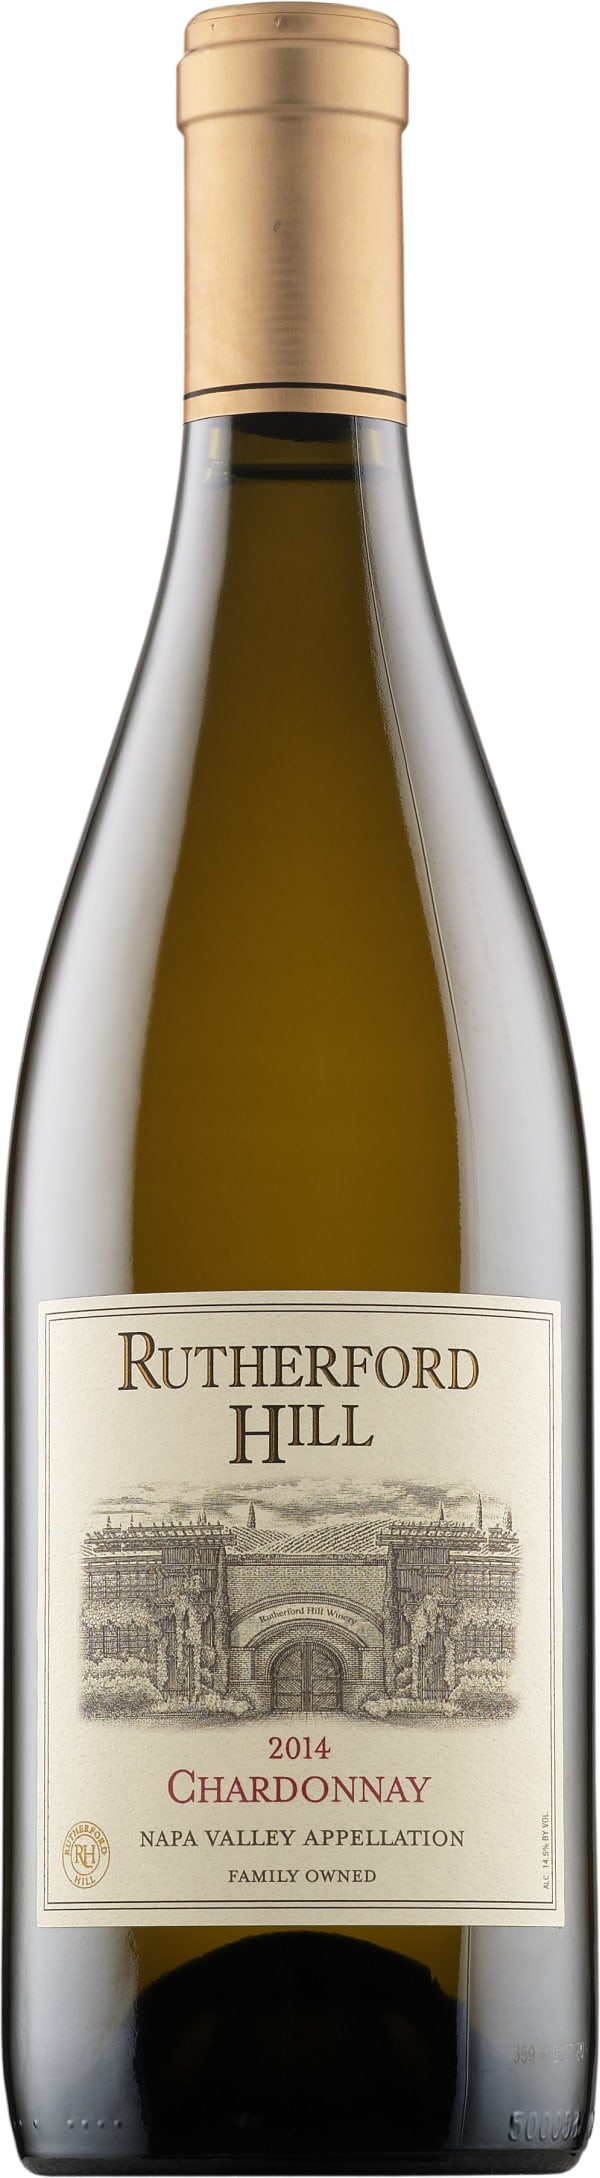 Rutherford Hill Chardonnay 2014